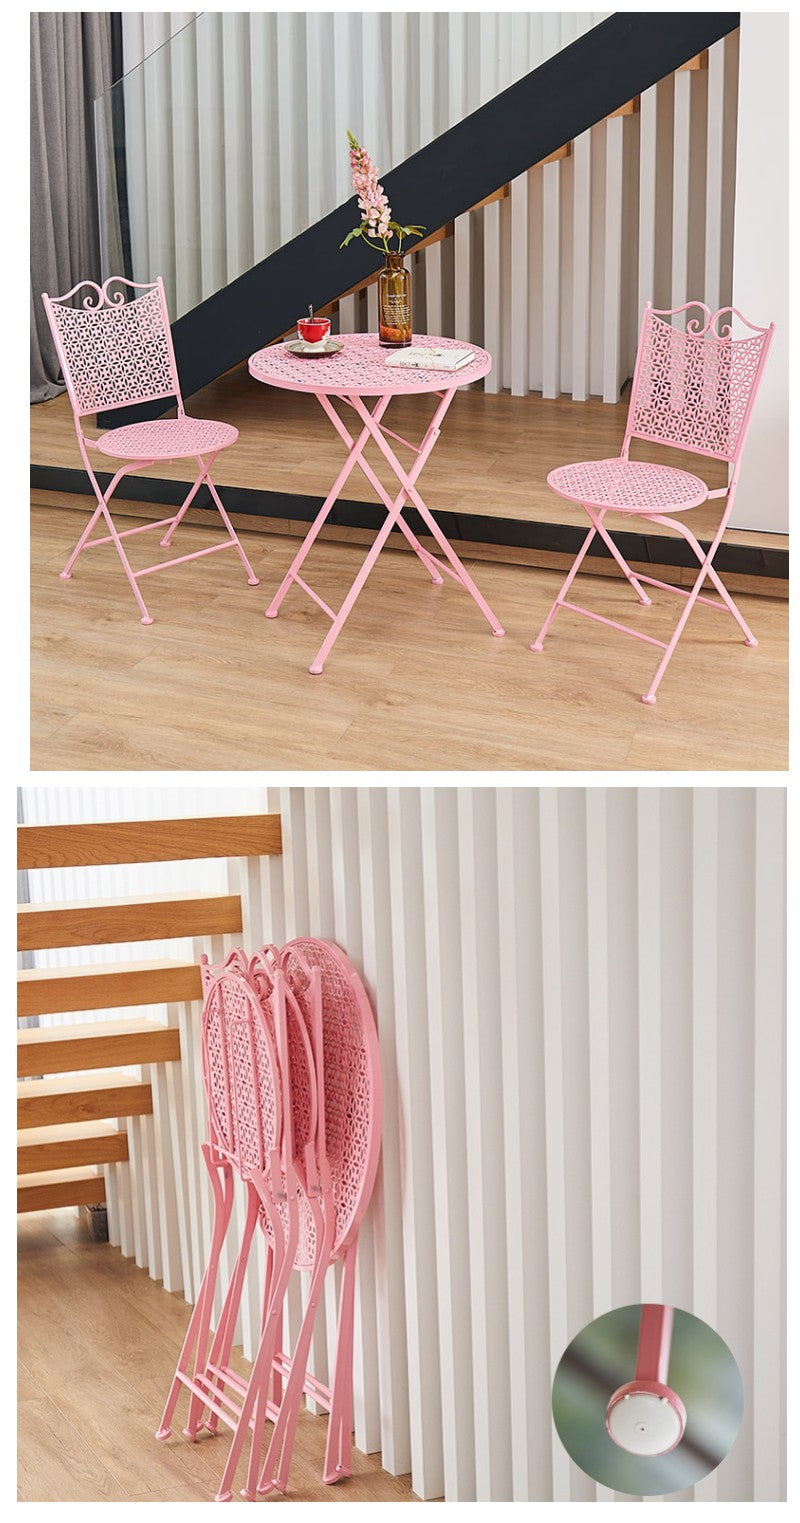 Garden Decoration Ideas, Pink Iron Foldable Chairs and Table for Garden, Balcony Table and Chairs